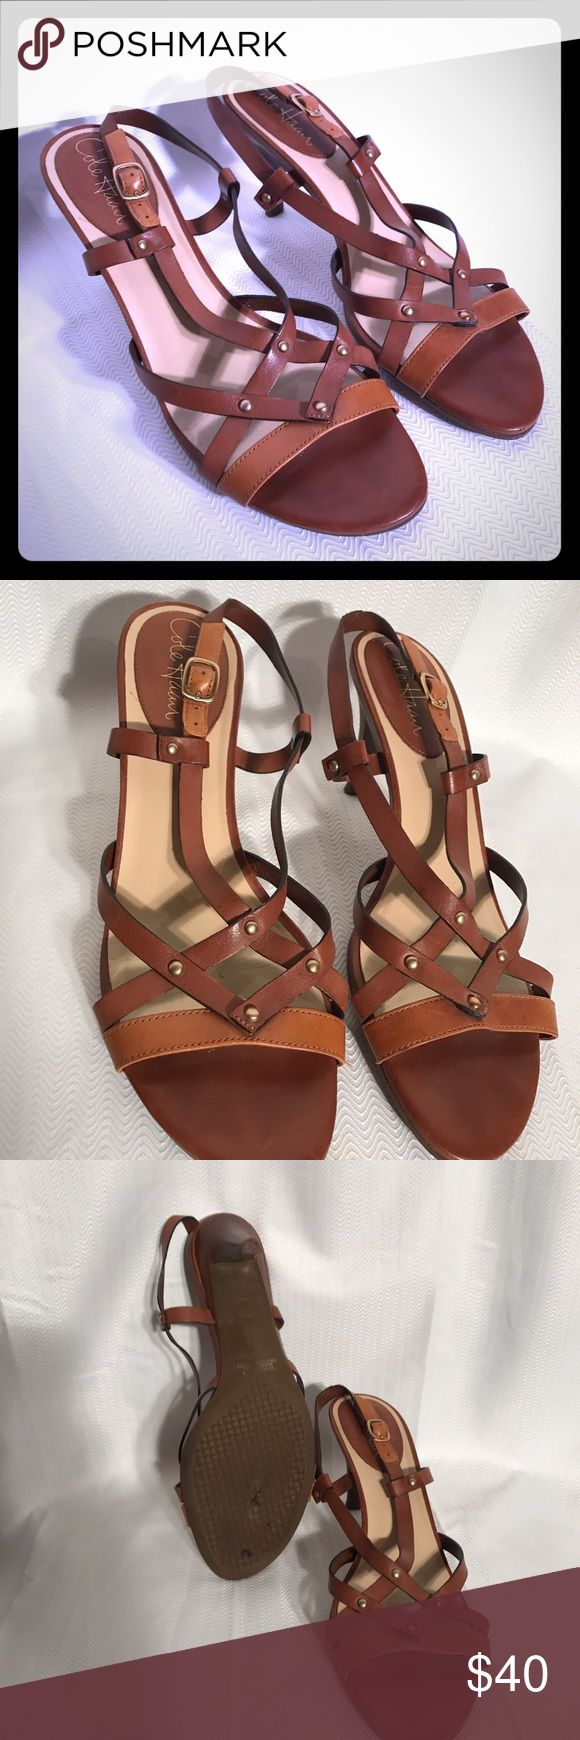 Cole Hann two toned leather sandals. Size 8.5. Cole Hann two toned leather sandals. Size 8.5.  Fantastic condition. Cole Haan Shoes Sandals